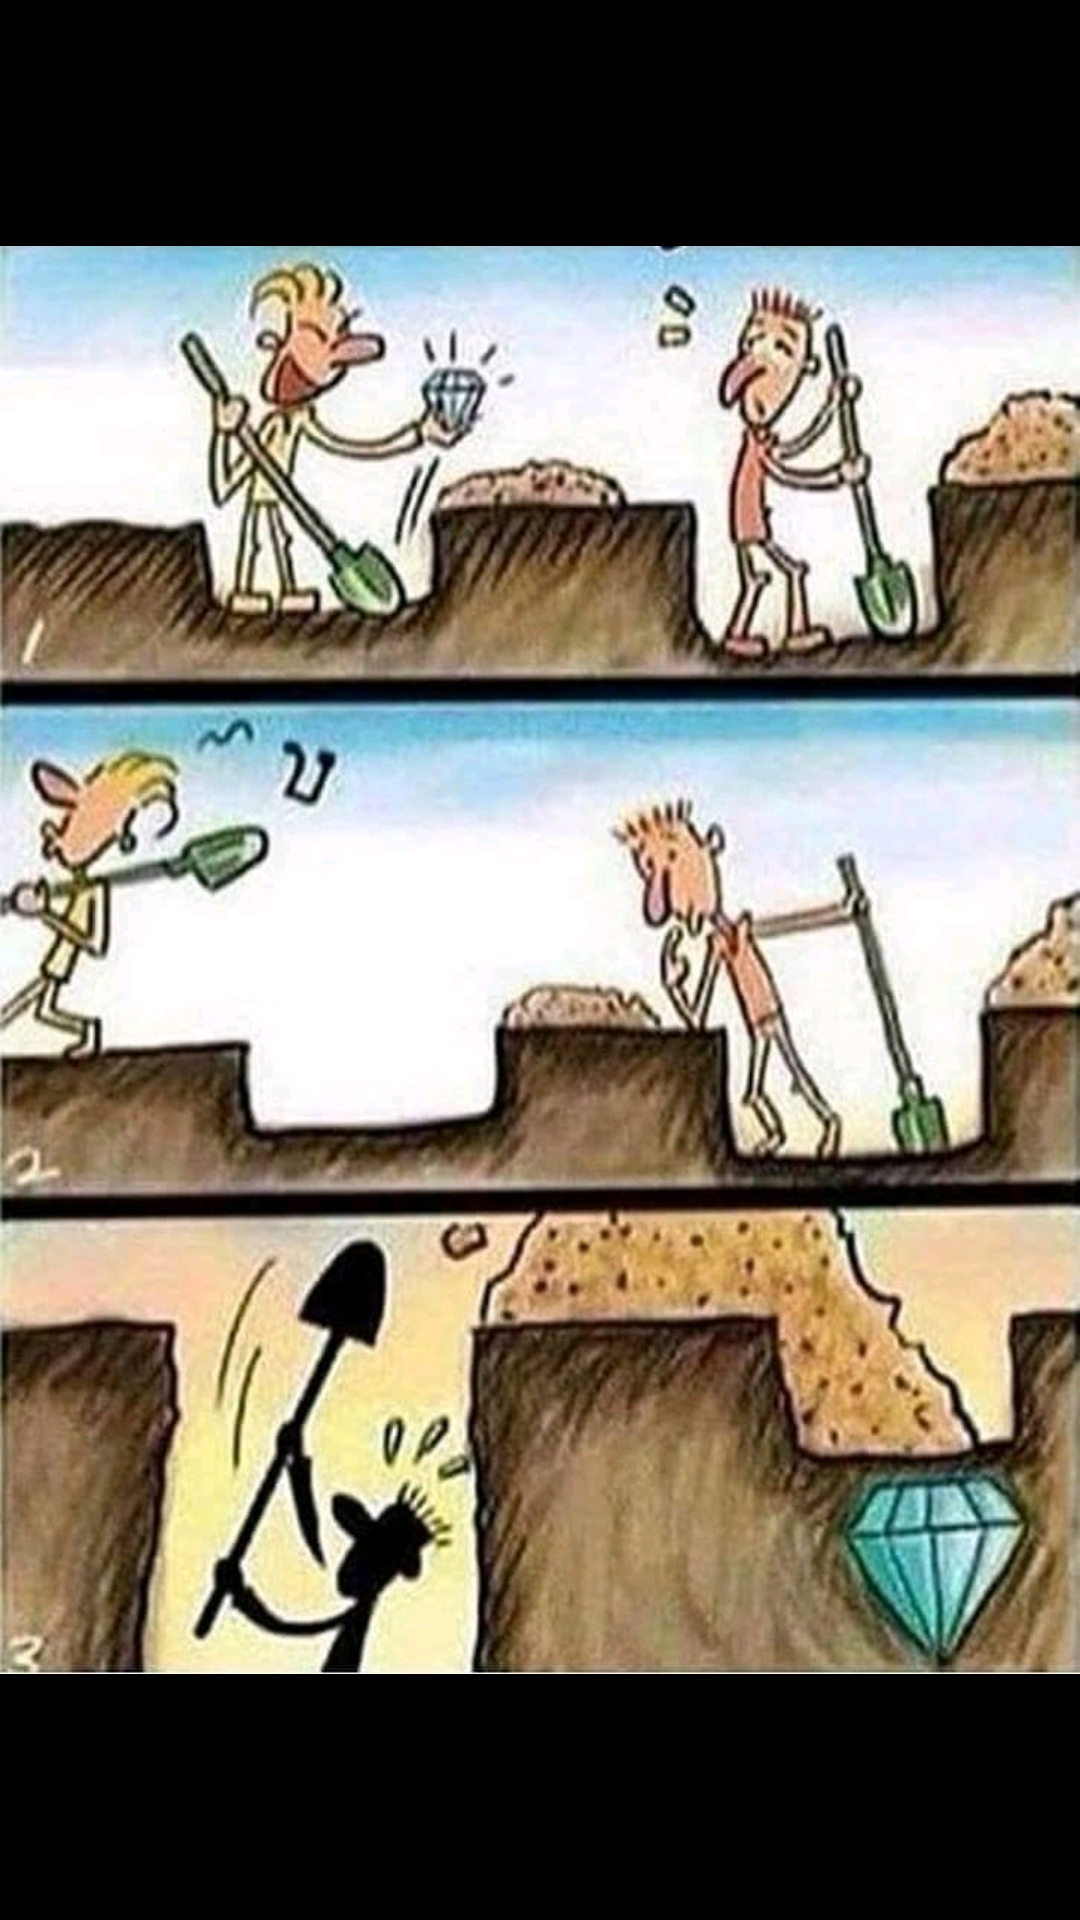 [Image] Focus on your own work.. patience is the key to success